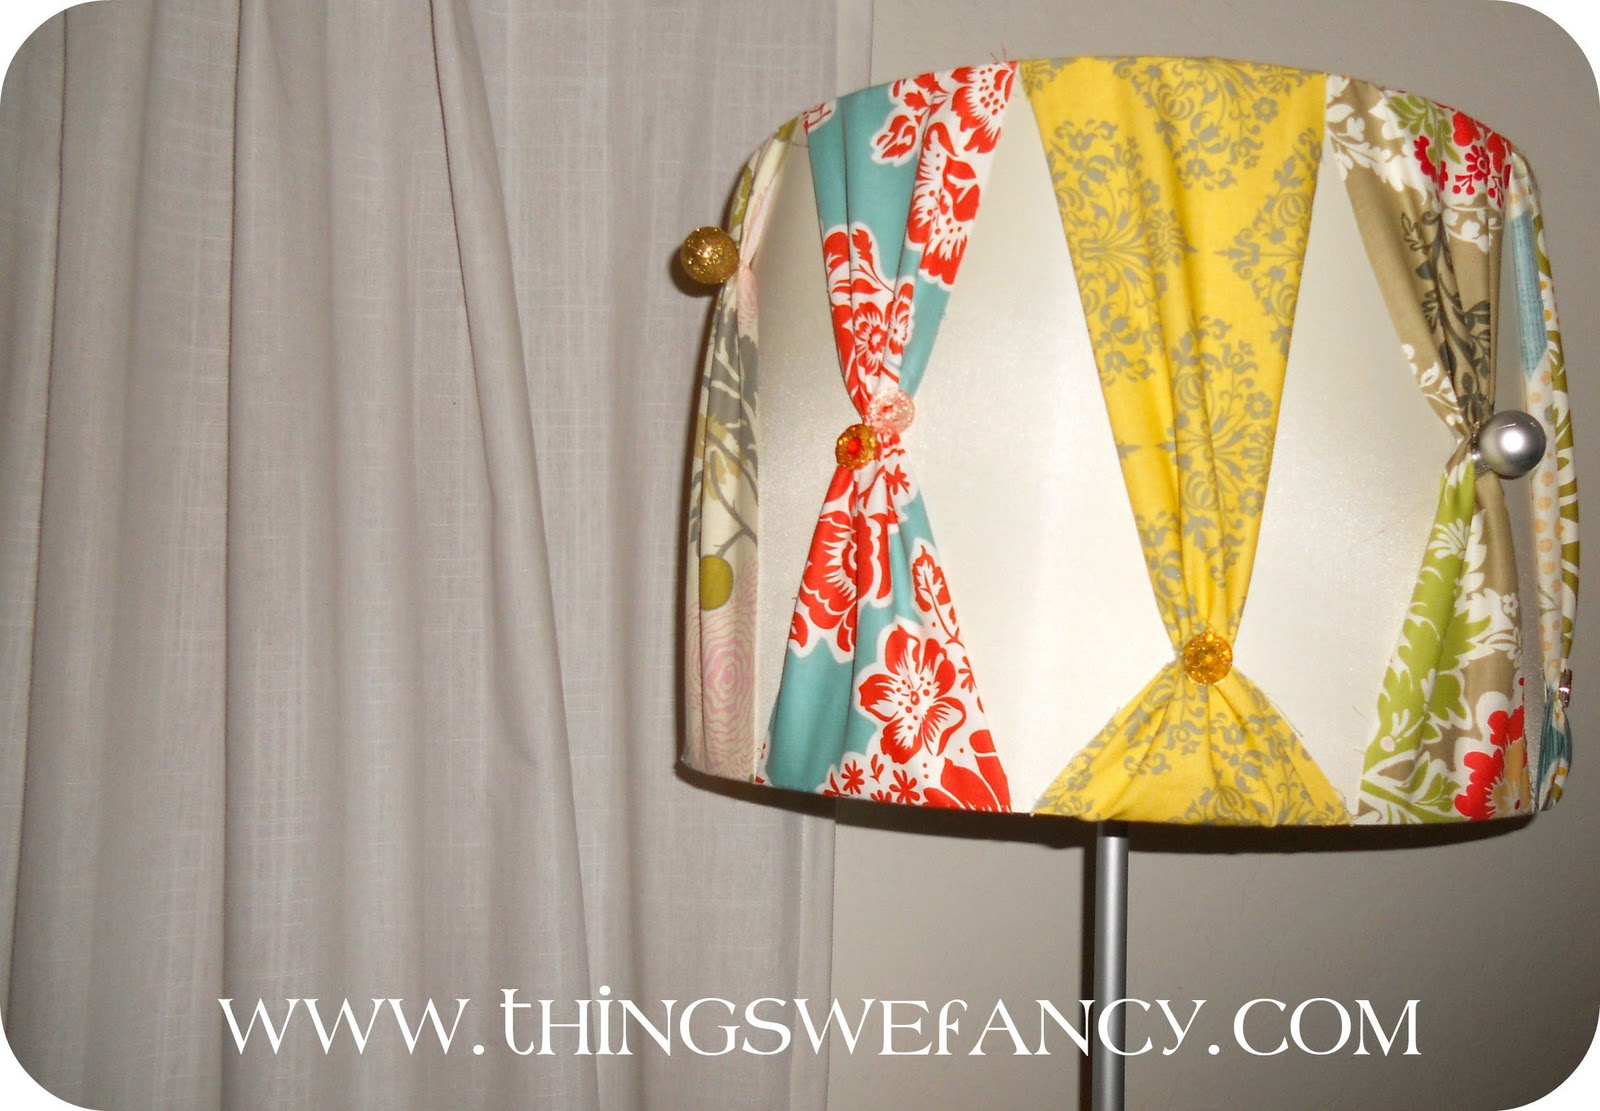 Fancy Diy Lampshade Diy Show Off Diy Decorating And Home Improvement Blogdiy Show Off